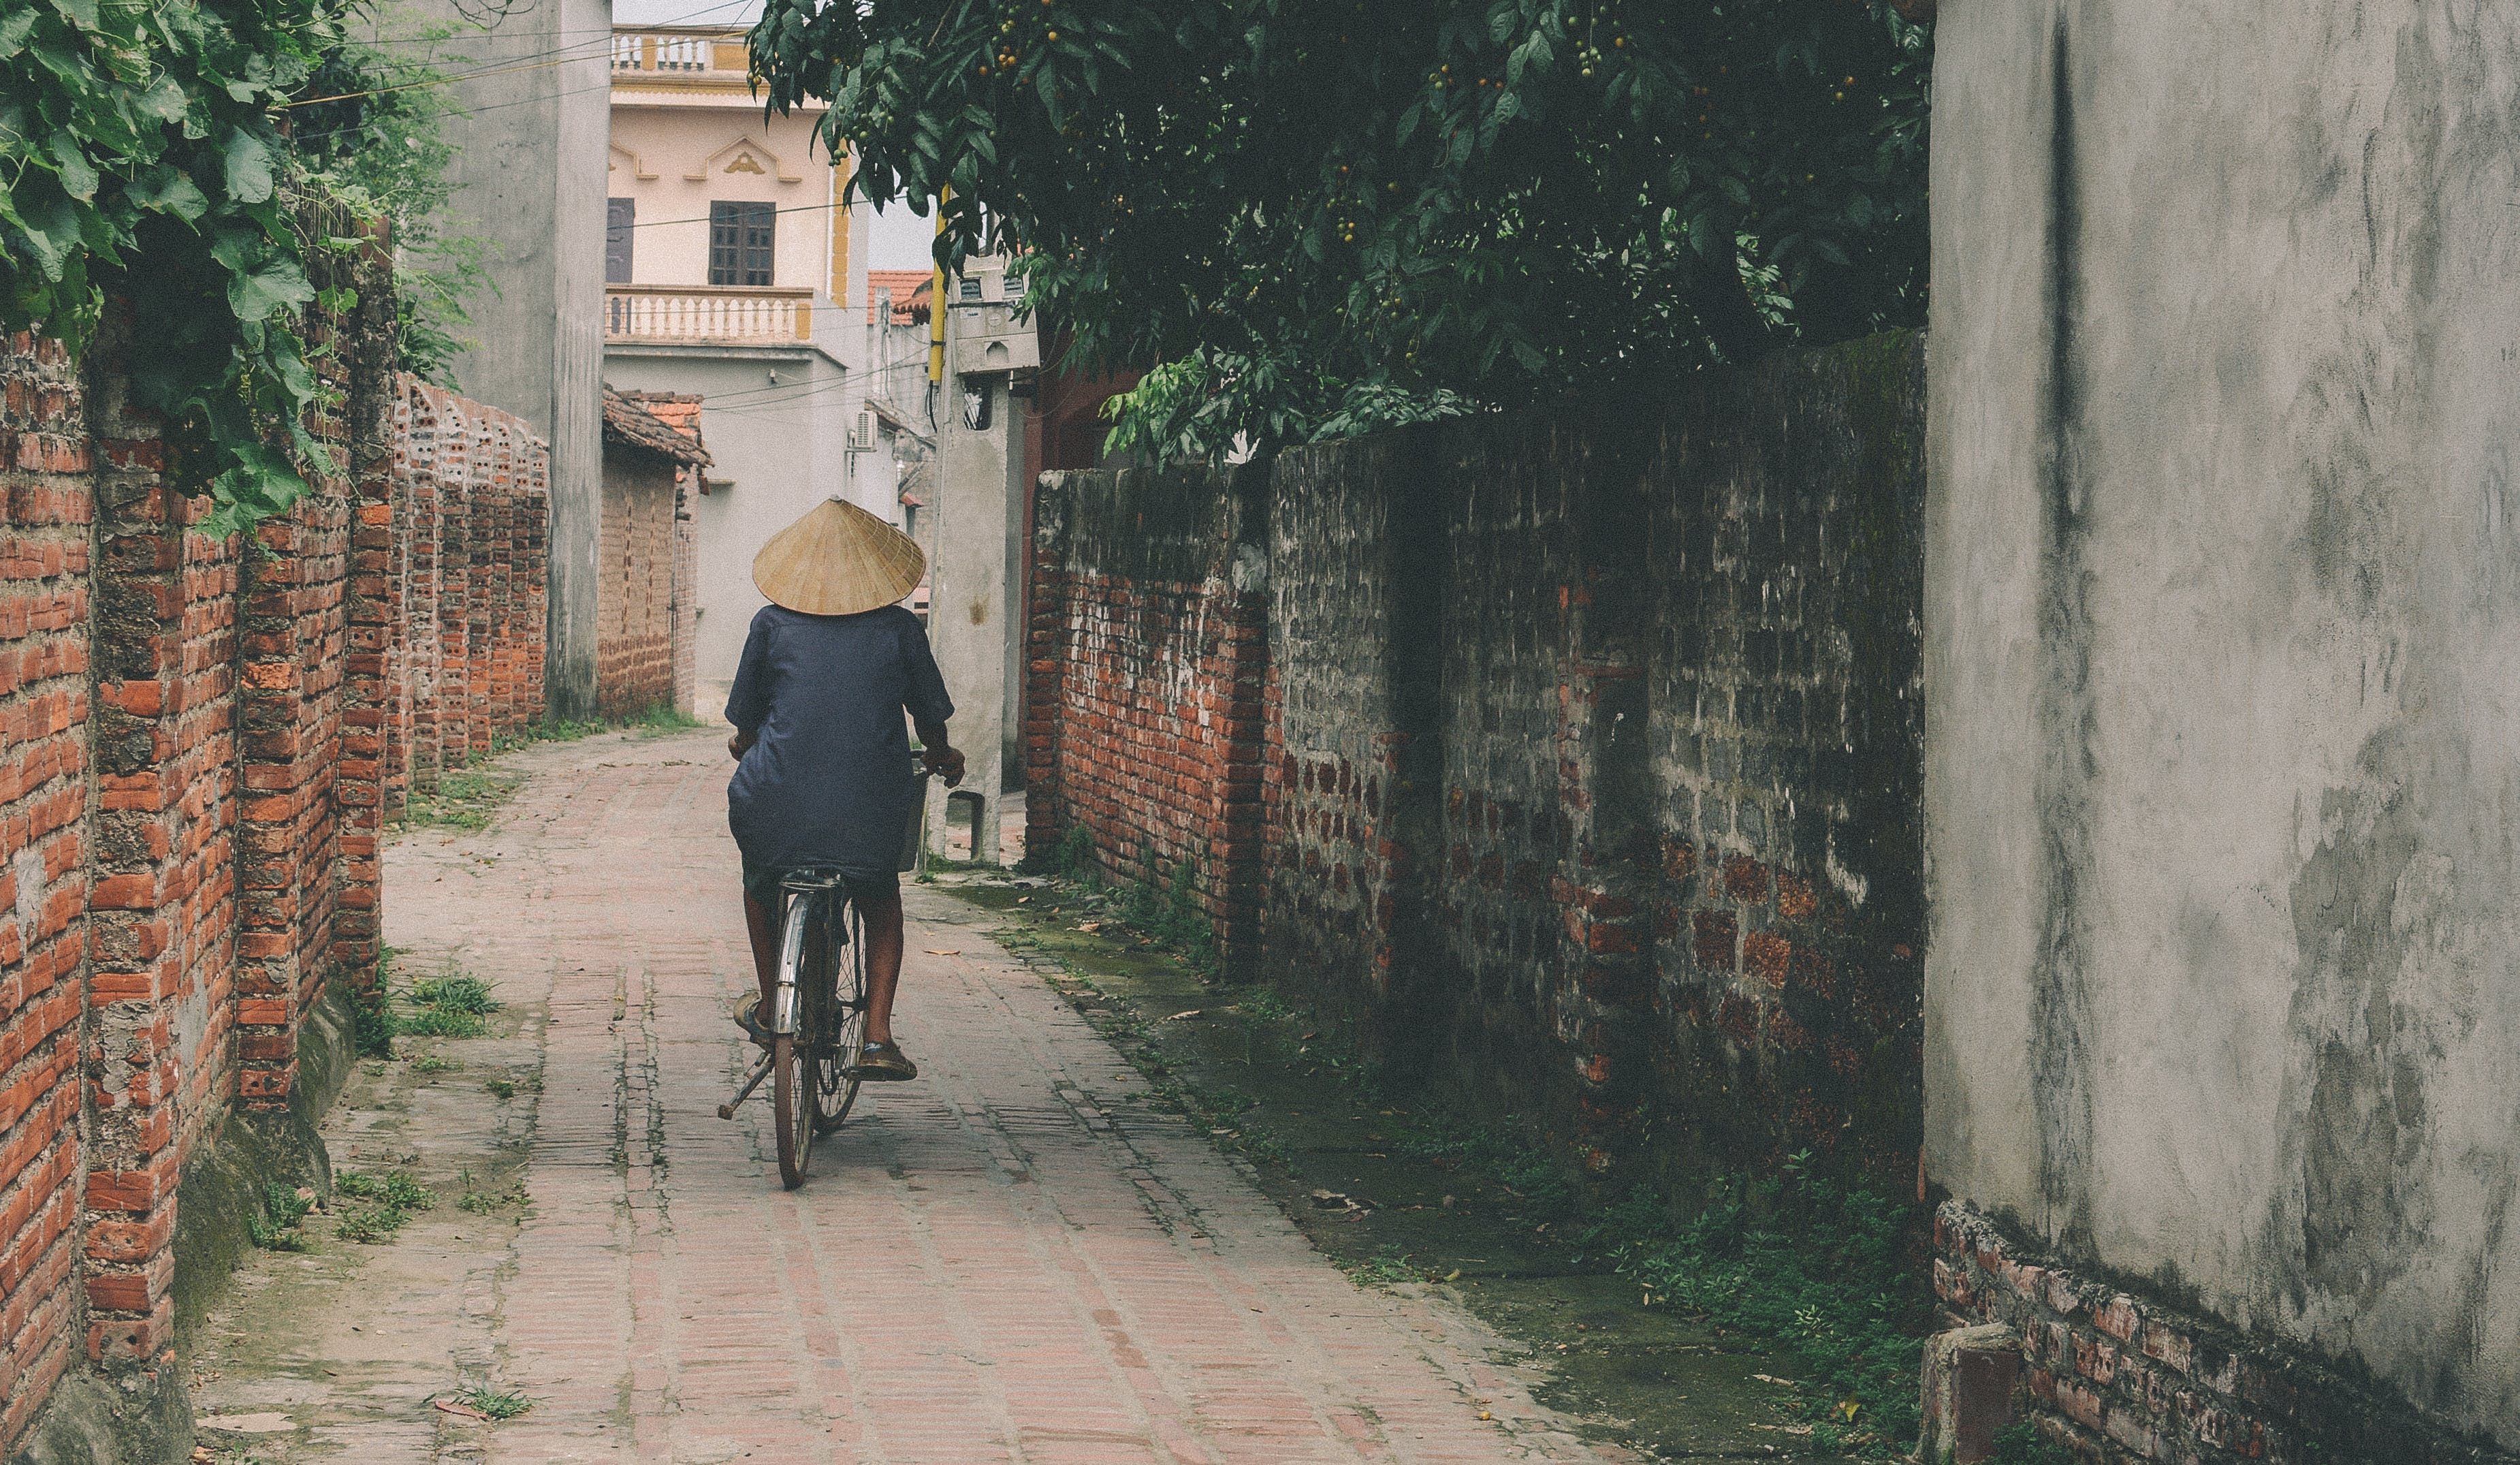 Person Riding Bicycle in the Middle of an Alley